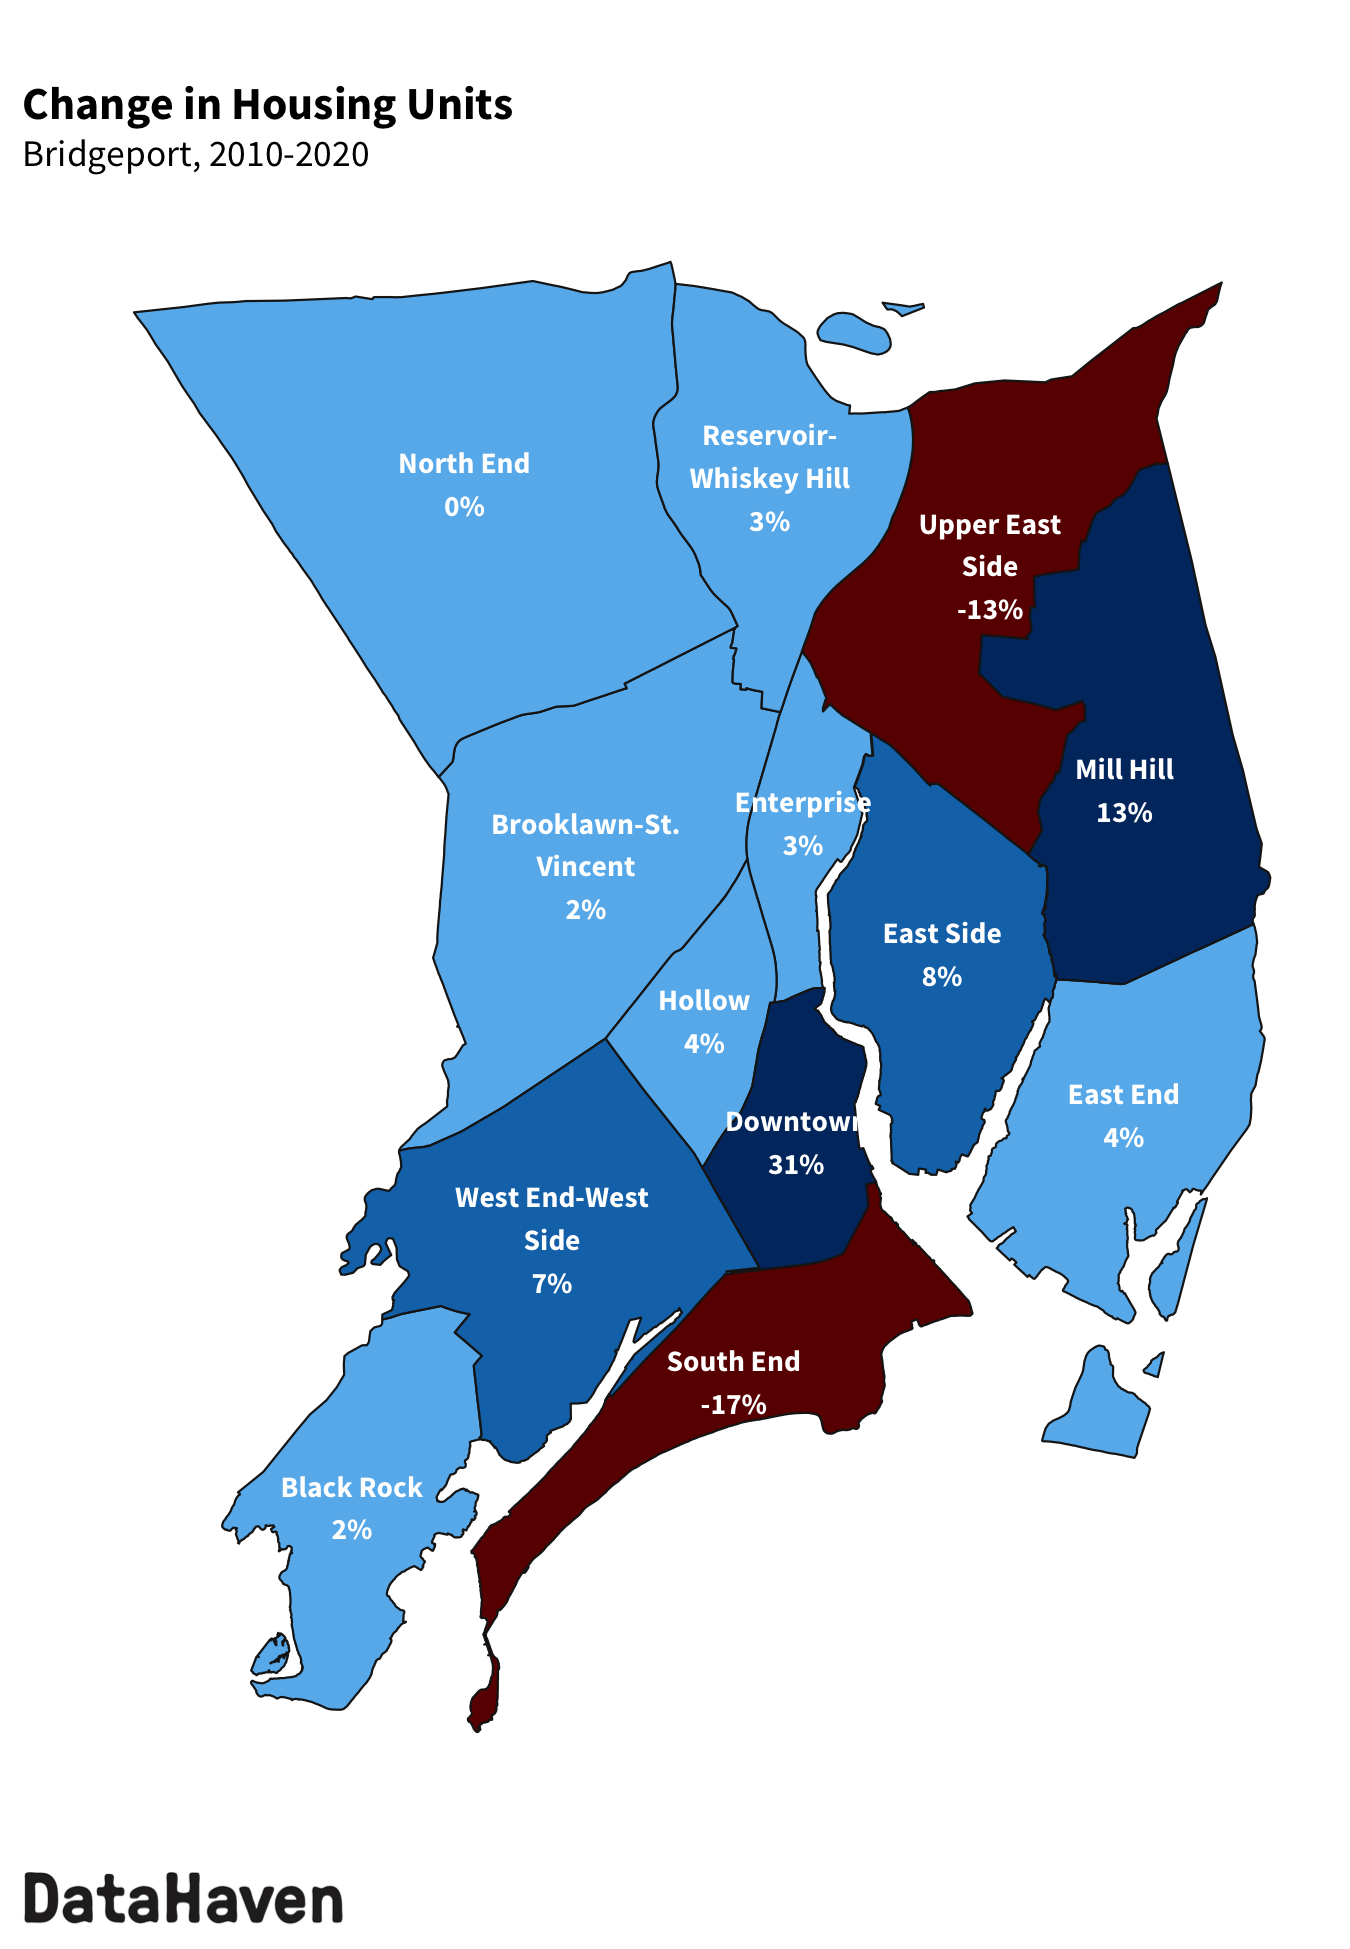 Bridgeport change in housing units from 2010 to 2020 Census